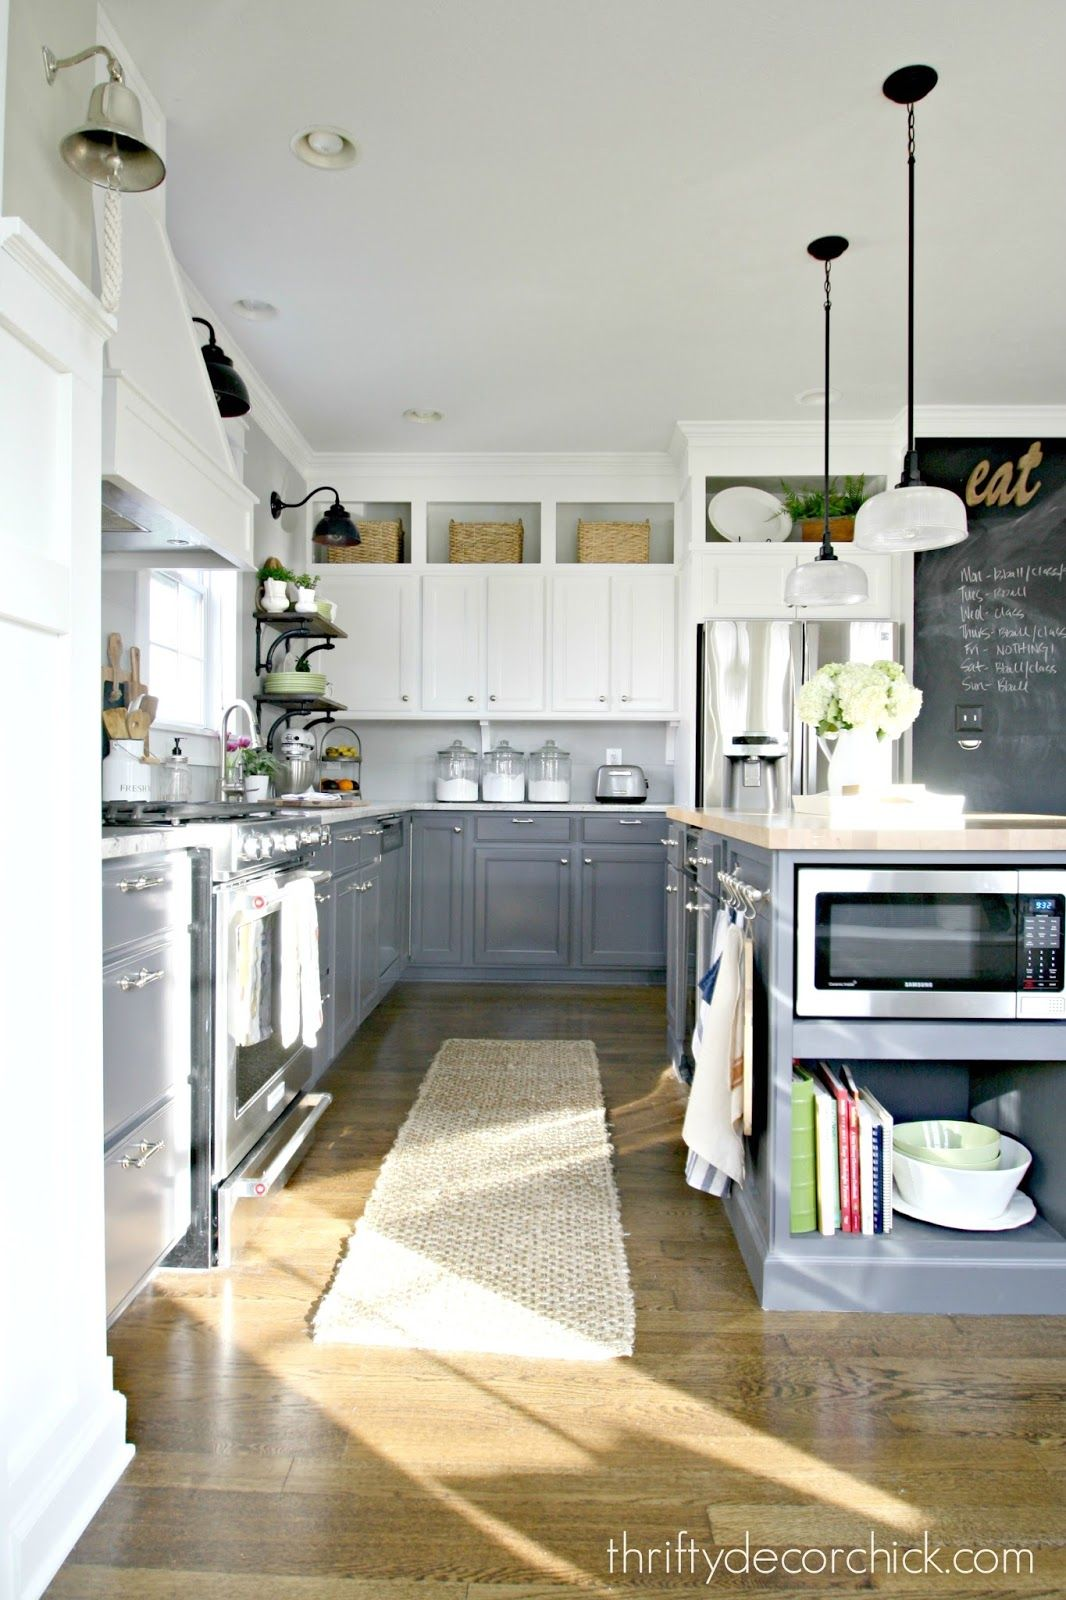 The Kitchen Renovation Budget (and How I Saved!) | Cheap kitchen ...